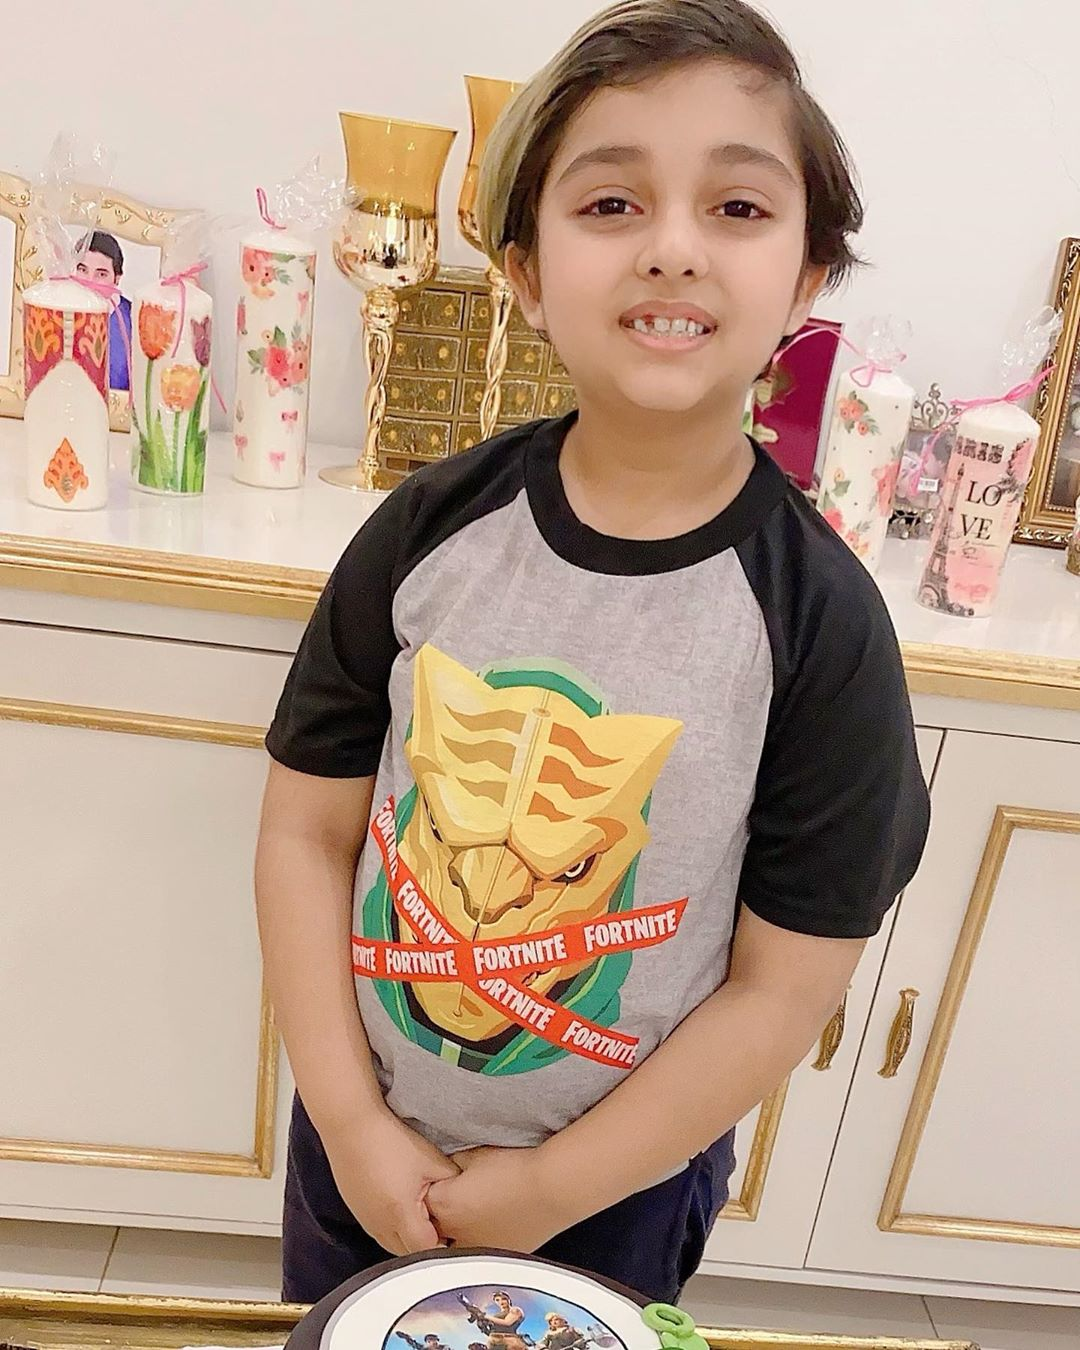 Javeria and Saud Son Ibrahim's 9th Birthday Pictures